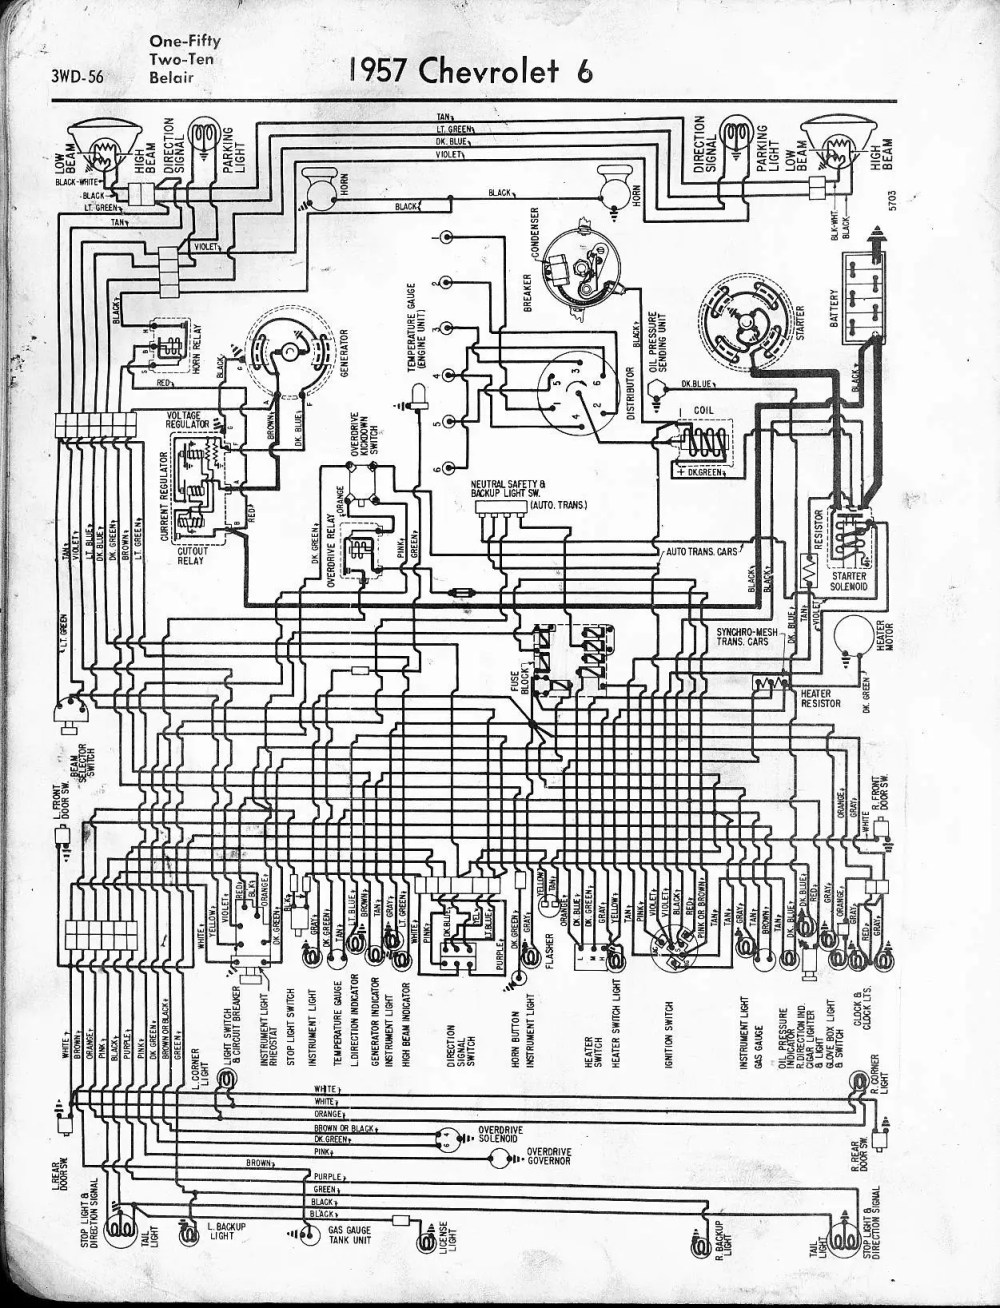 medium resolution of 57 65 chevy wiring diagrams1957 6 cyl one fifty two ten belair